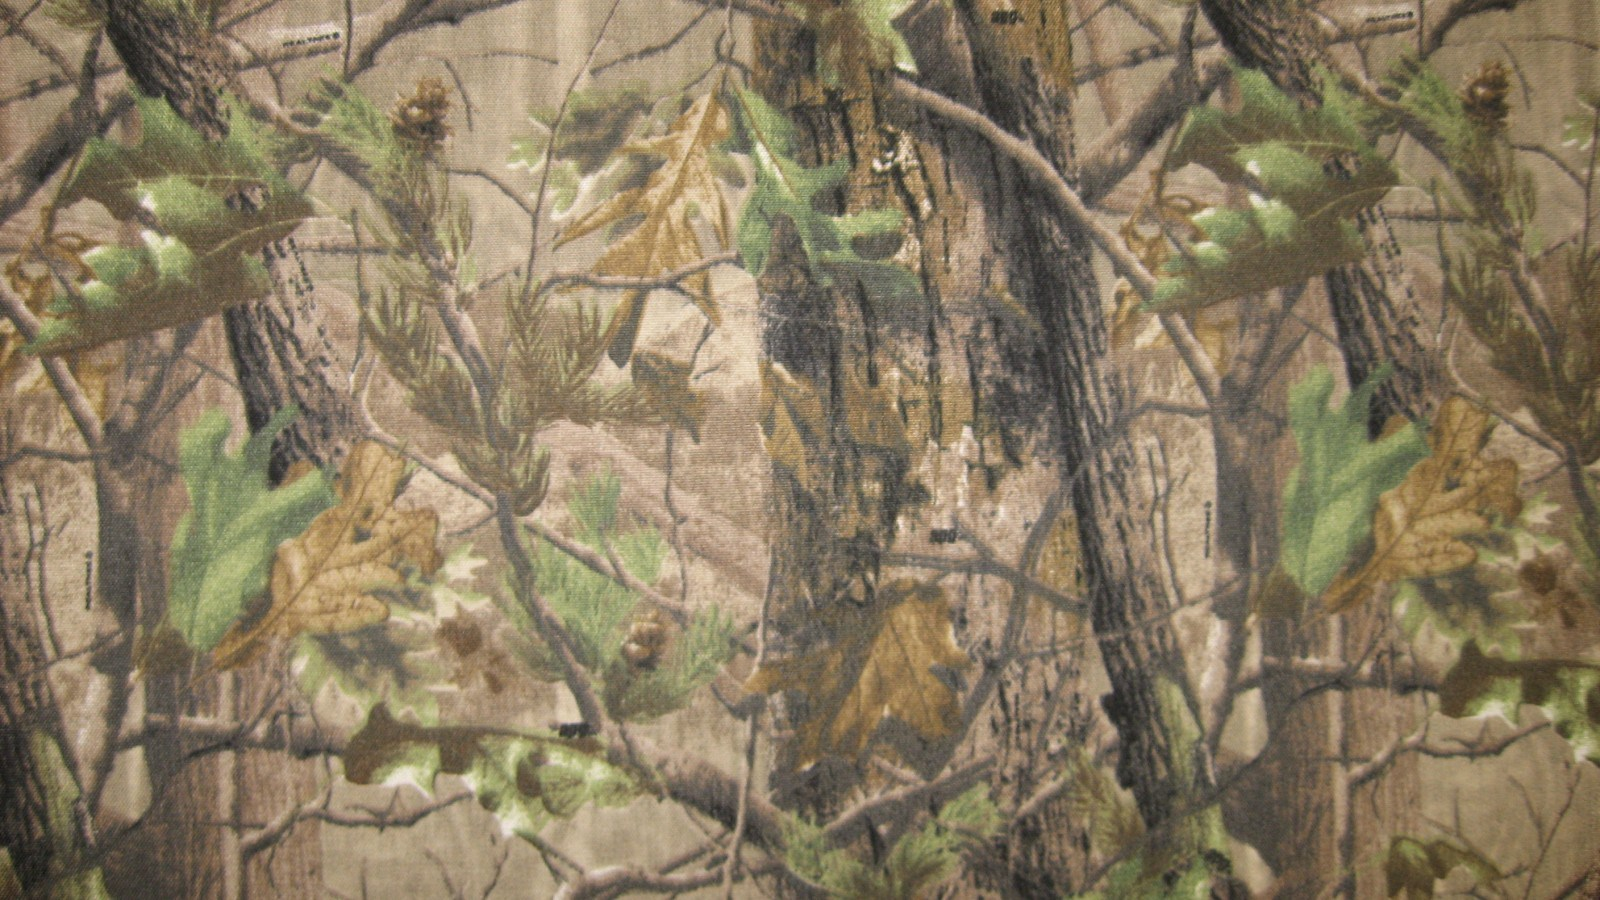 Free Realtree Wallpaper Picure - Realtree Camo Background - HD Wallpaper